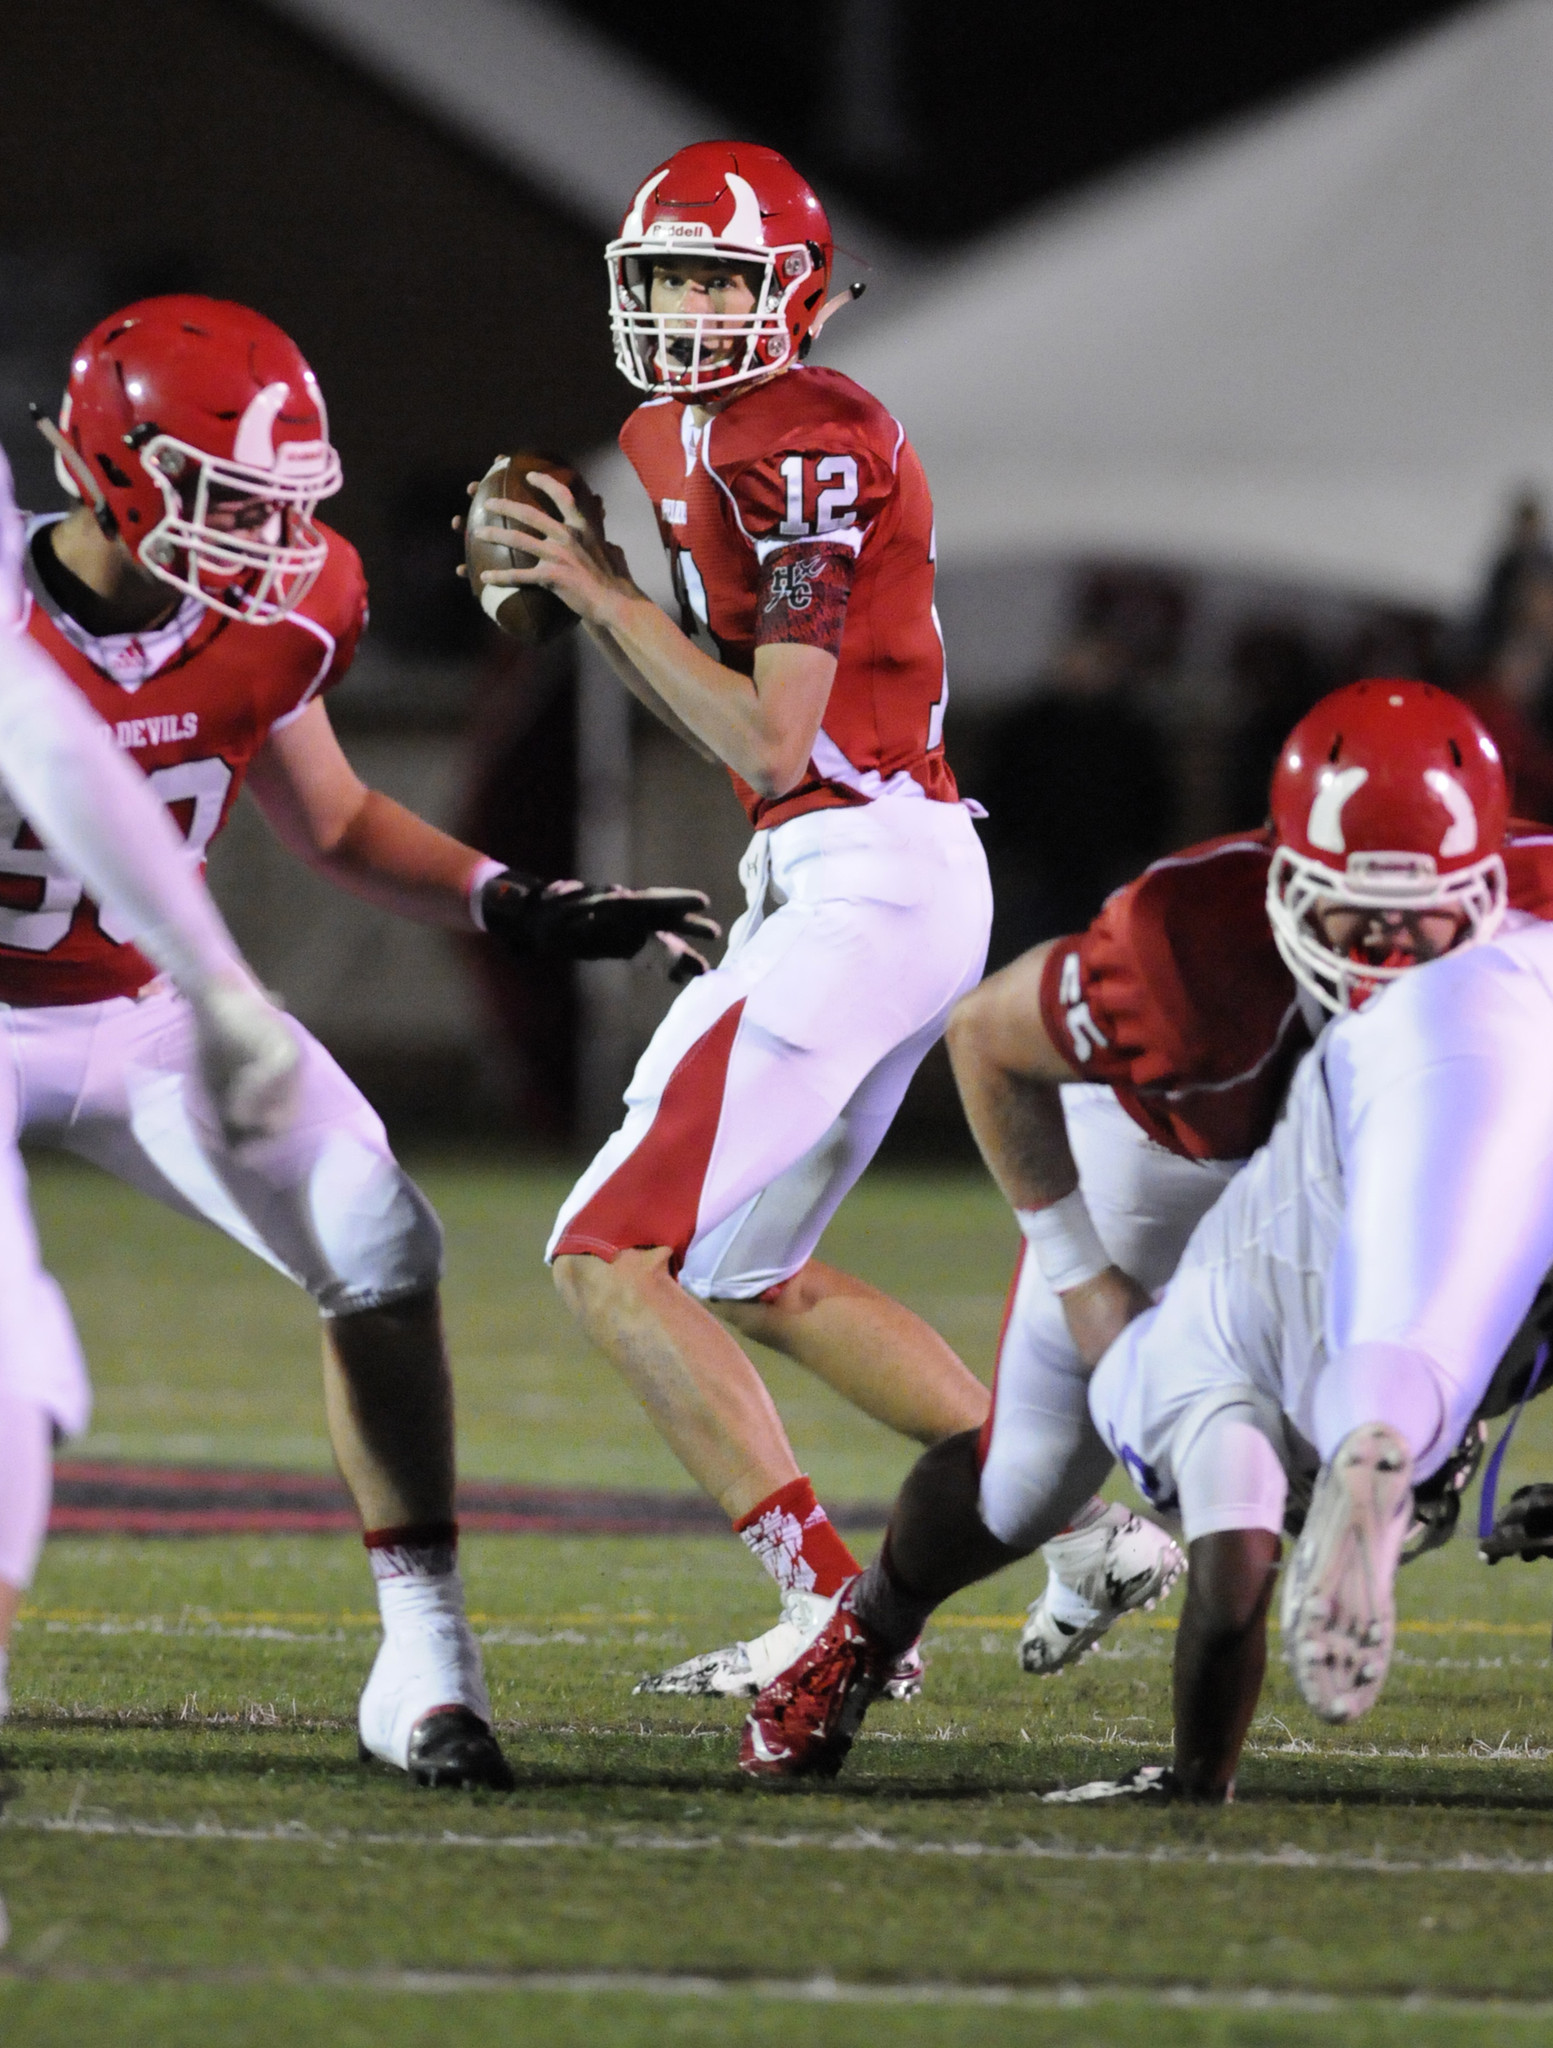 Football Hinsdale Central 43 Downers Grove North 0 Carroll